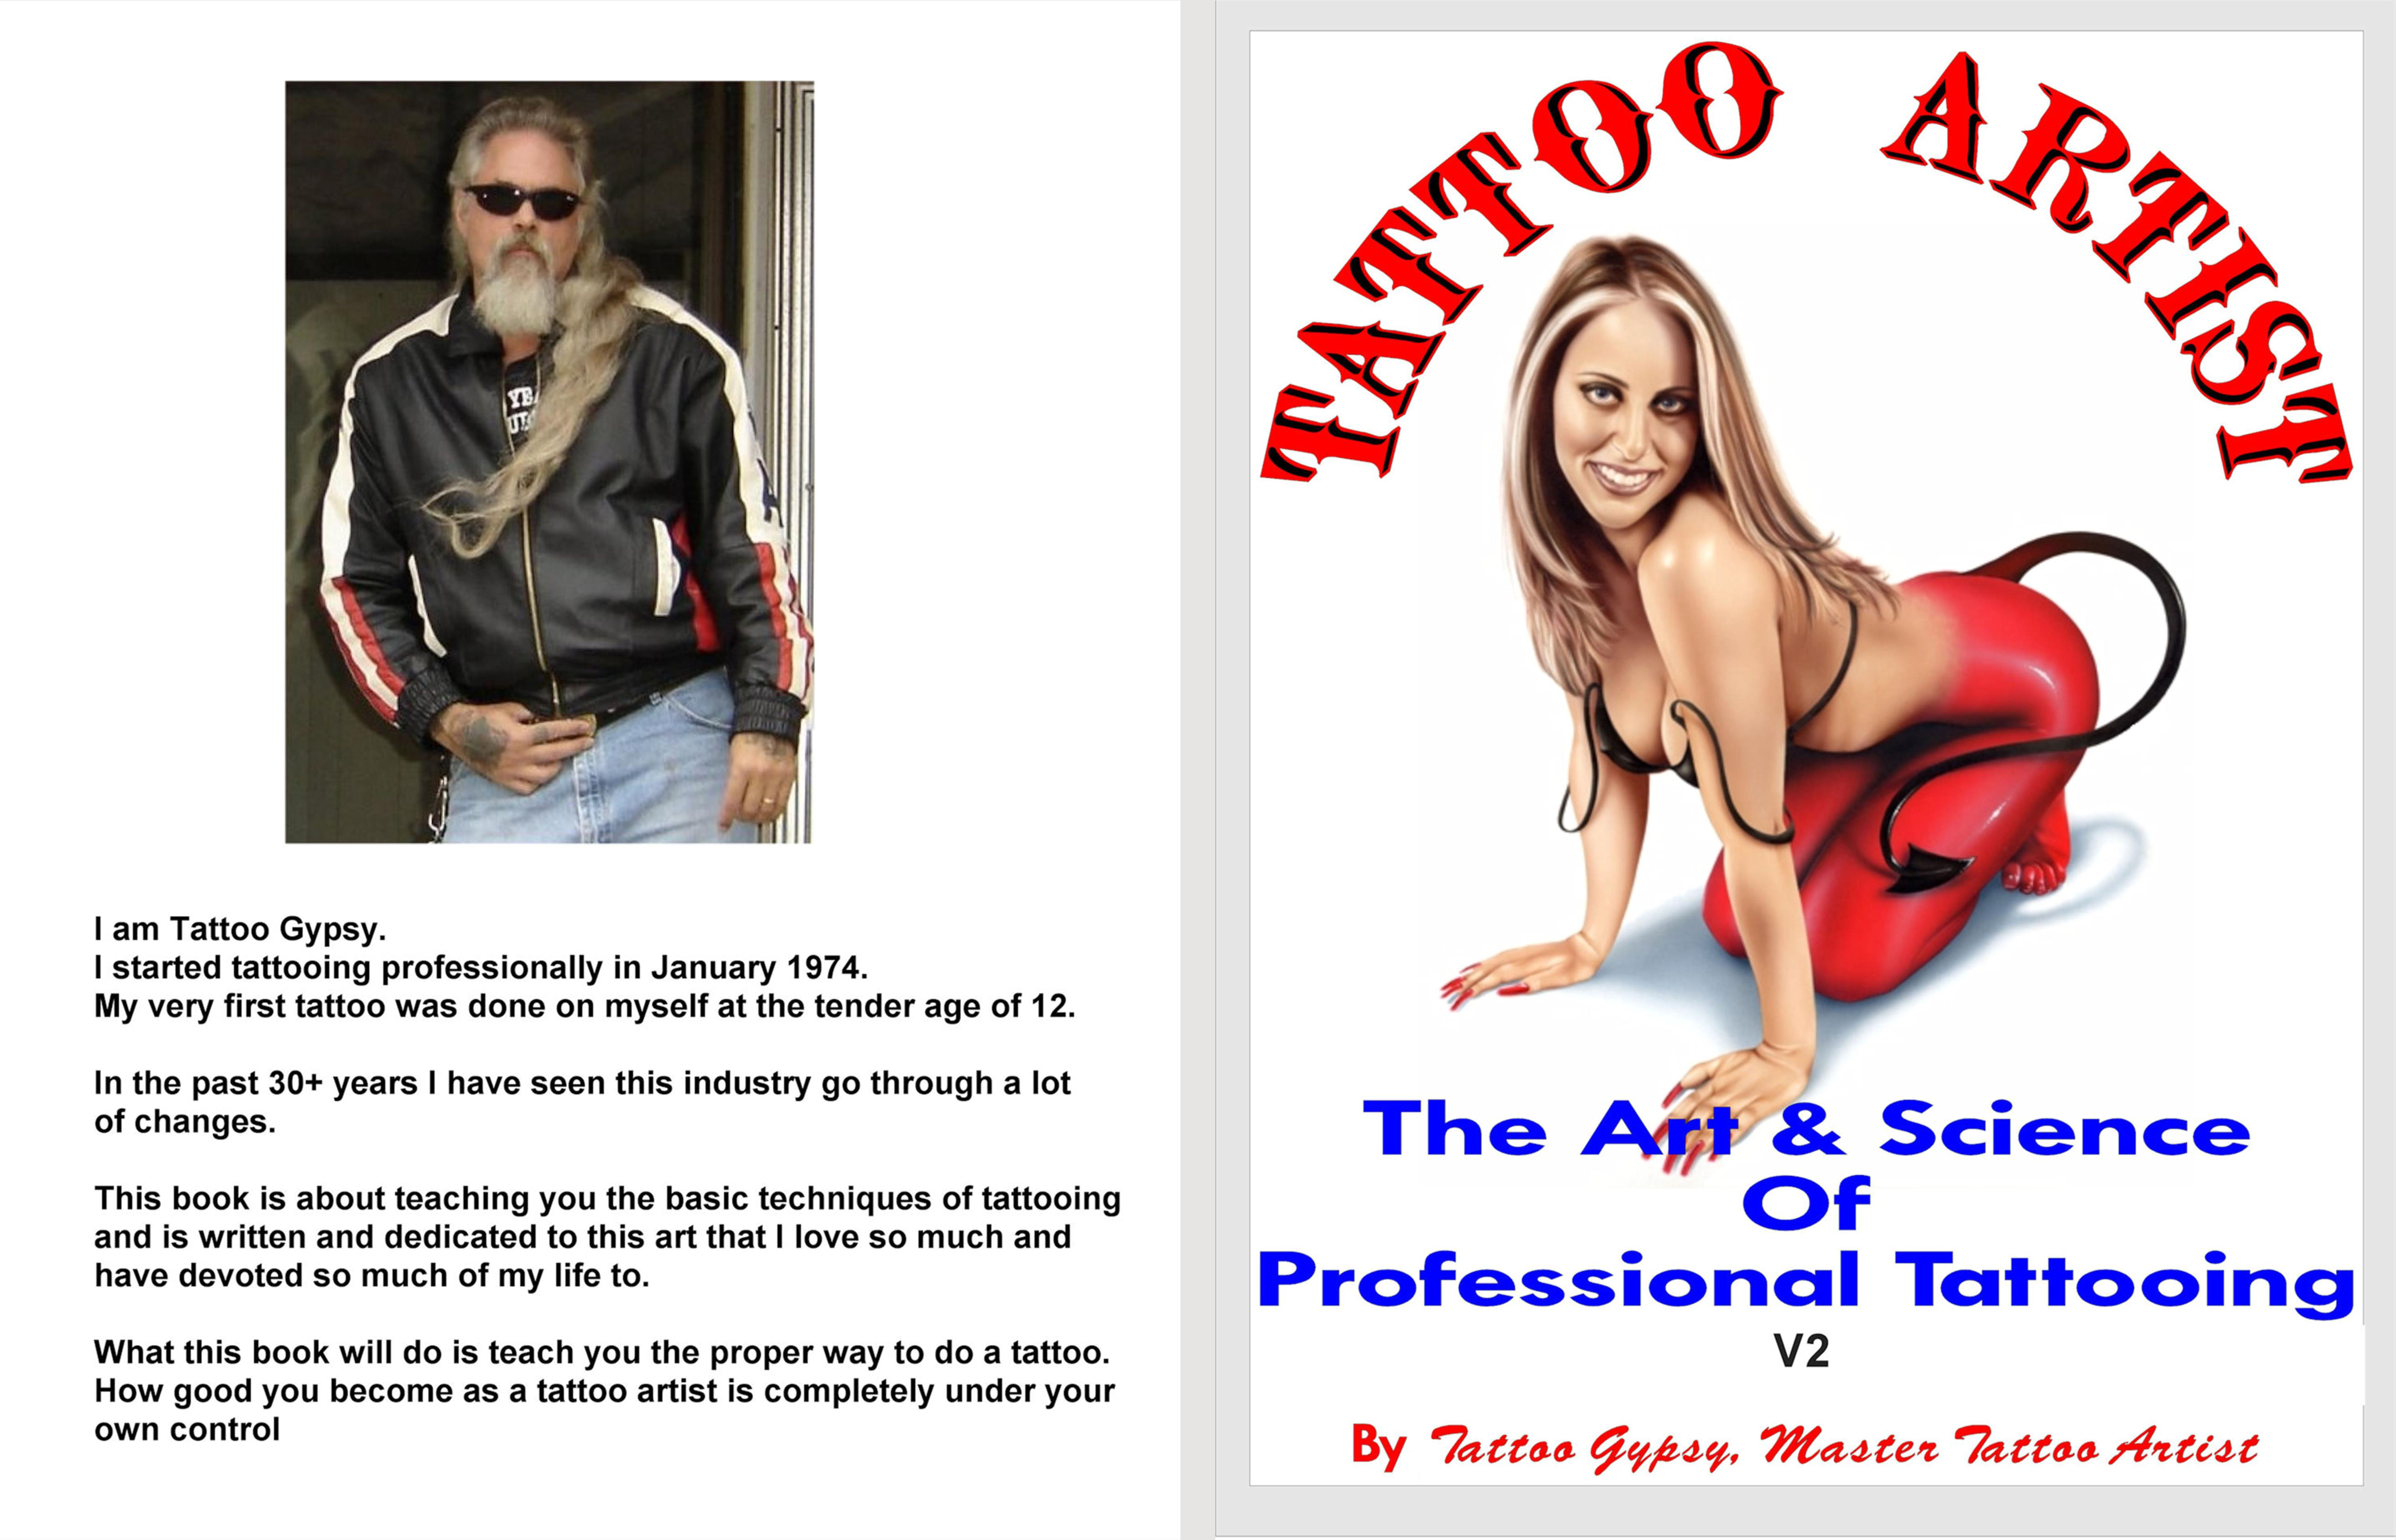 Tattoo Artist - The Art & Science of Professional Tattooing V2 cover image